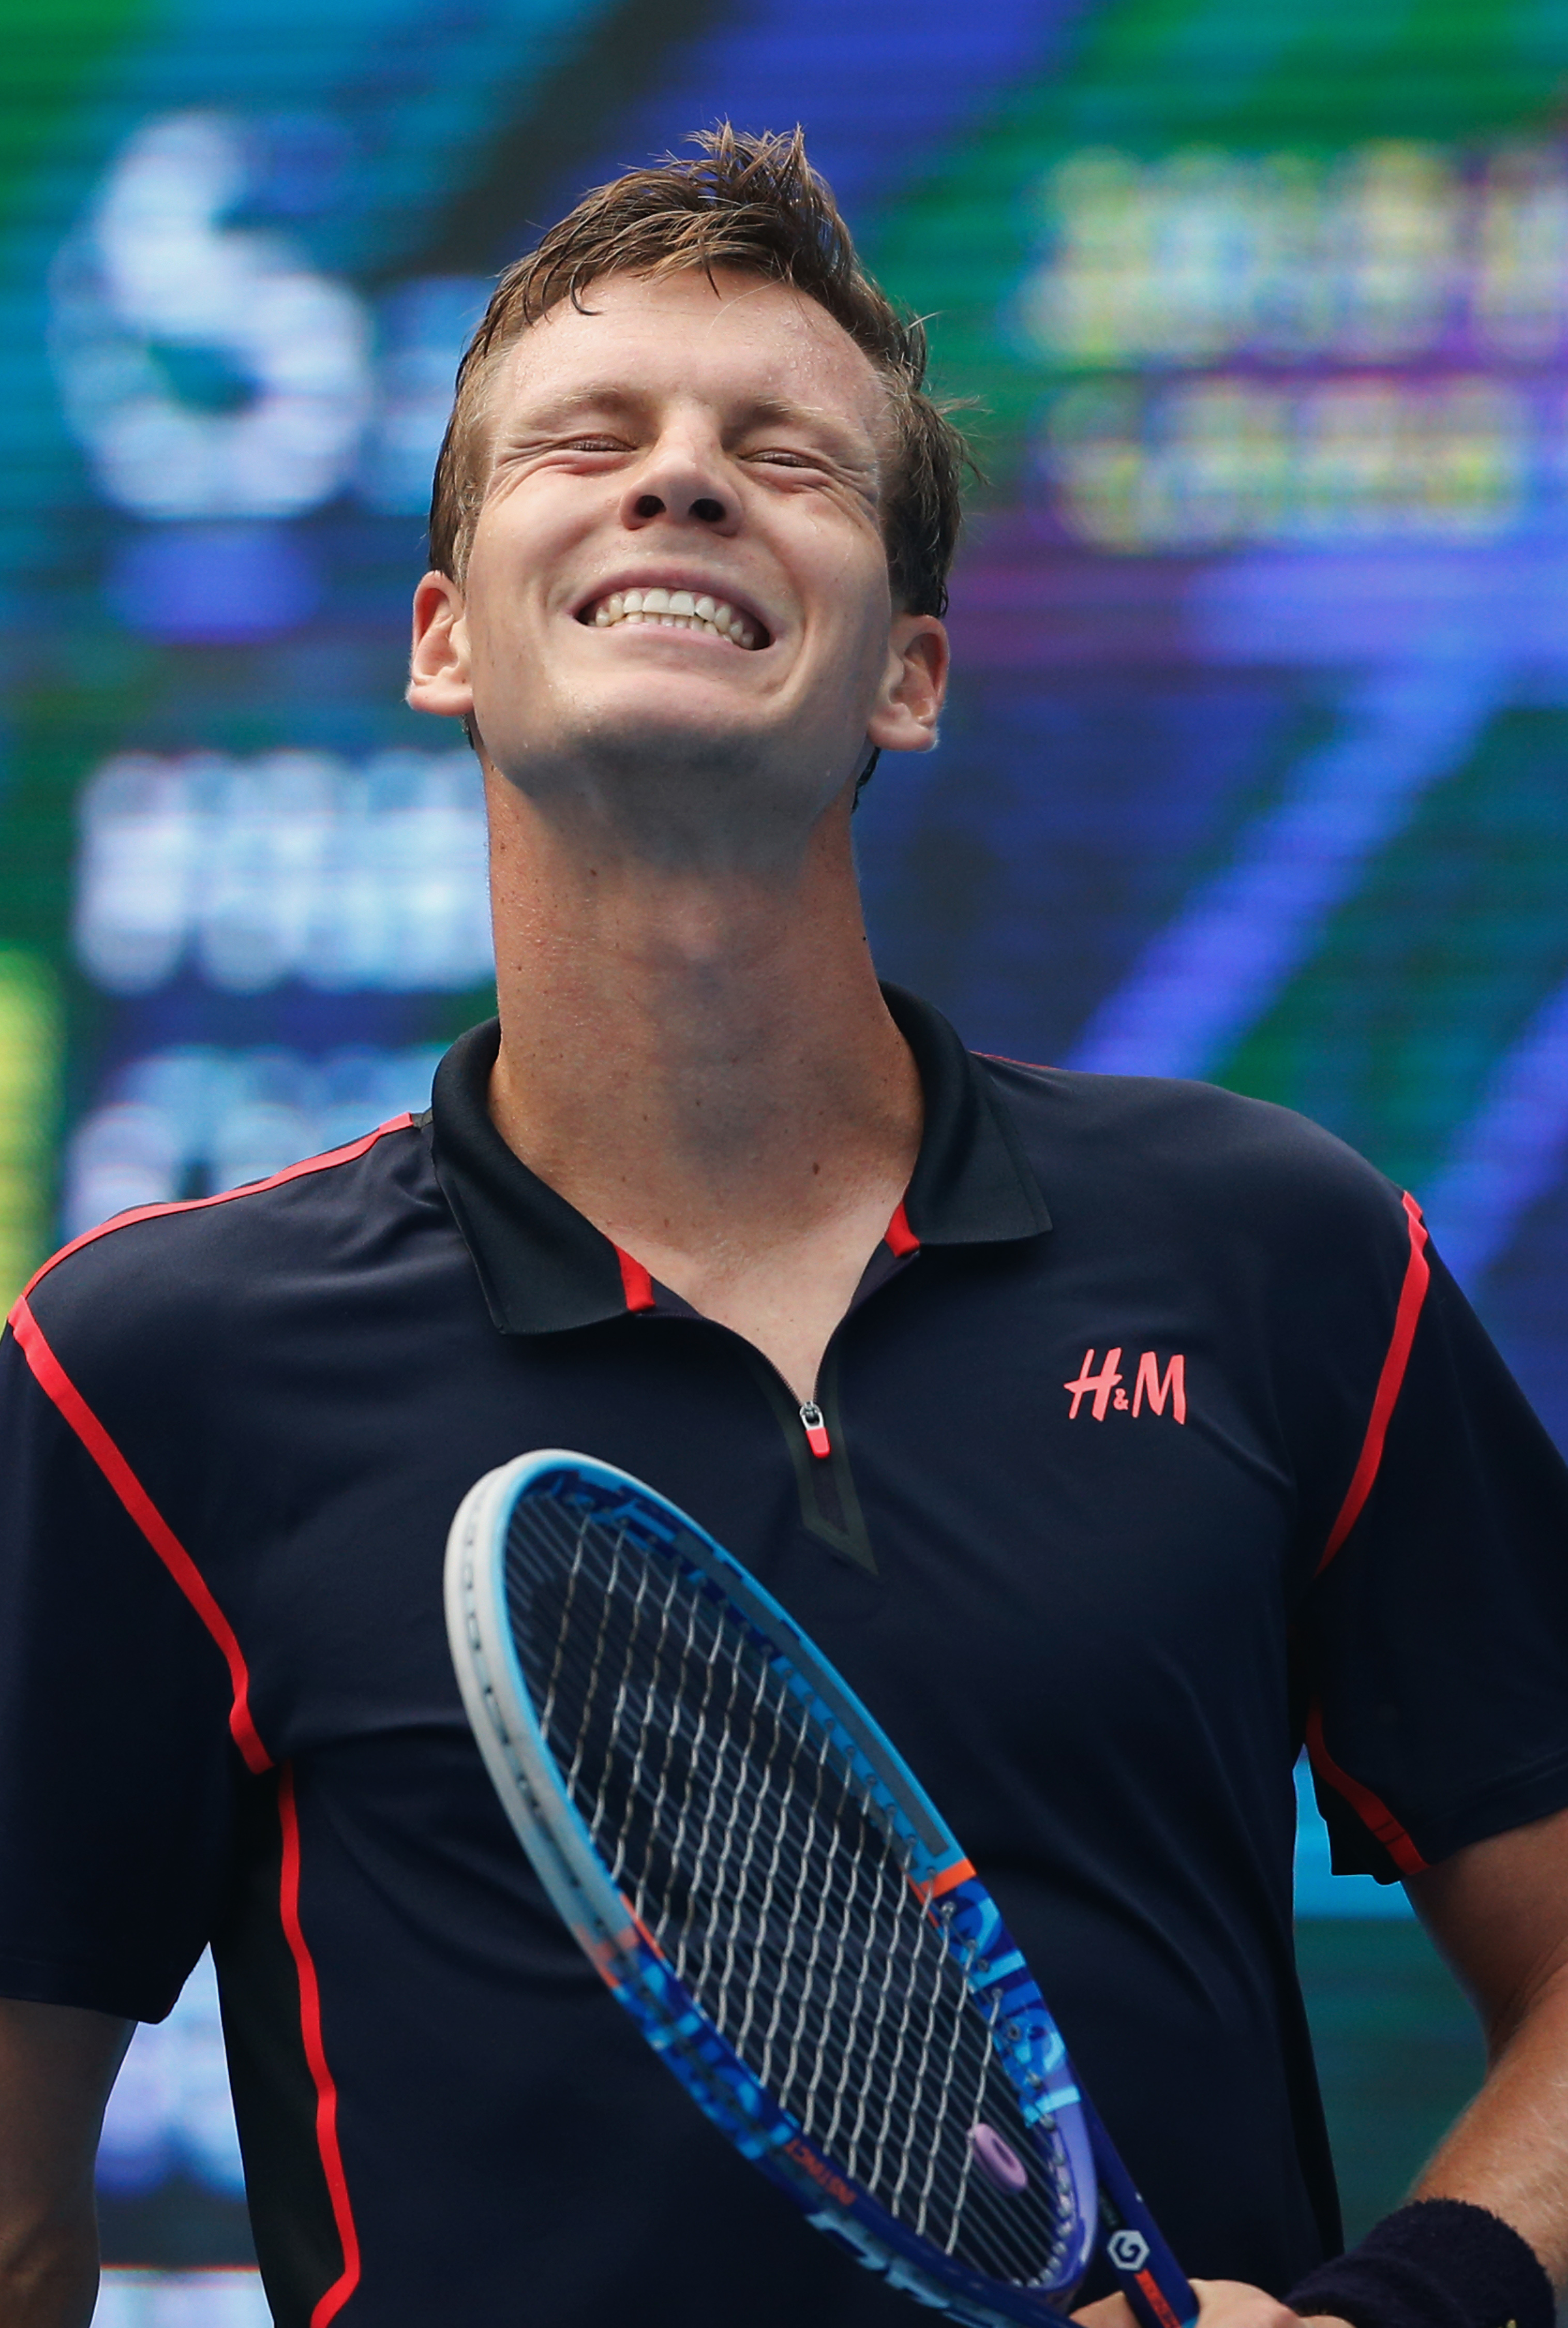 Tomas Berdych of the Czech Republic reacts after missing a point to Pablo Cuevas of Uruguay during their men's singles match of the China Open tennis tournament at the National Tennis Stadium in Beijing, Wednesday, Oct. 7, 2015. (AP Photo/Andy Wong)